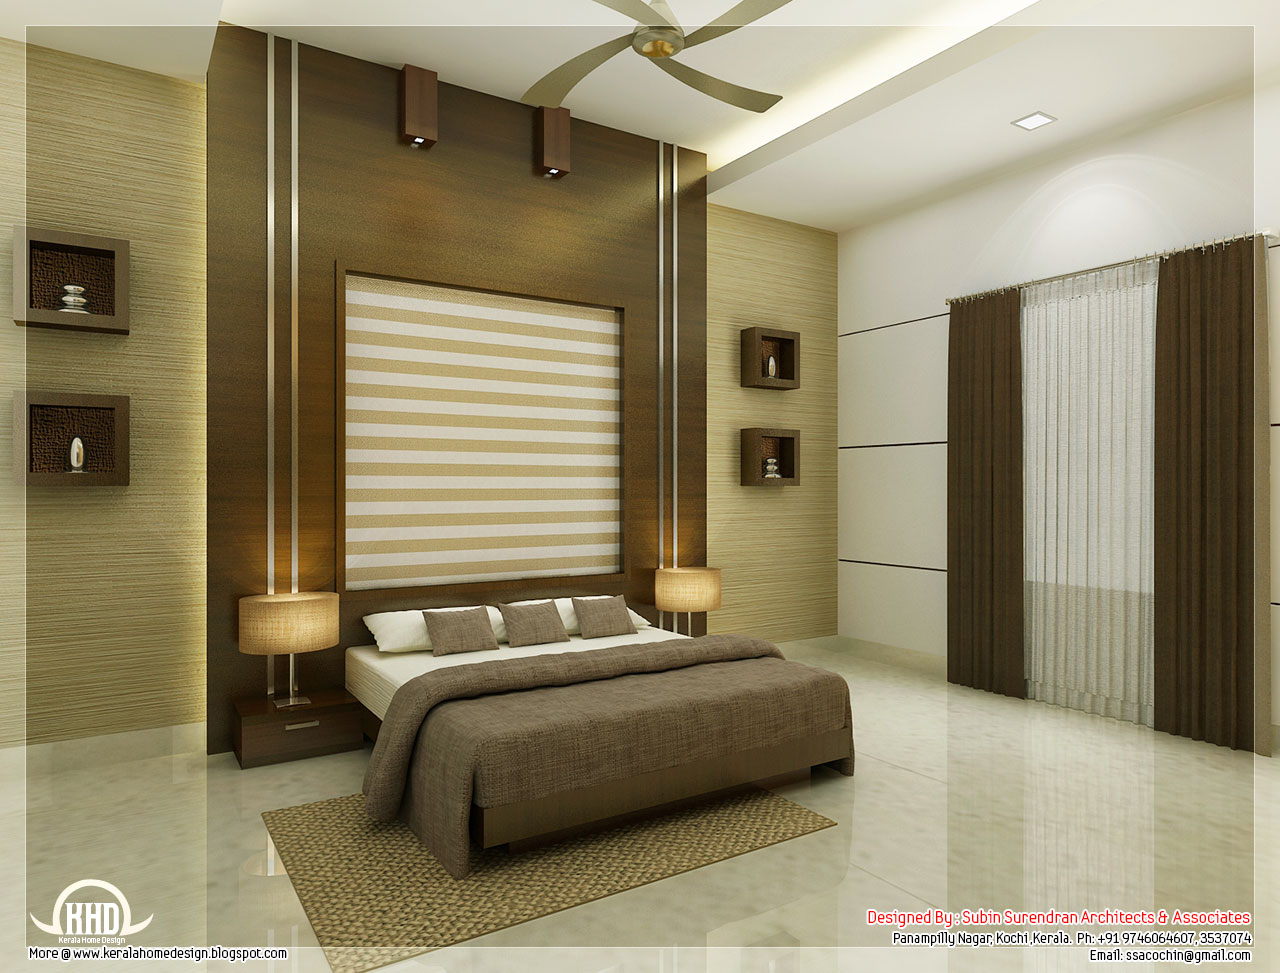 Beautiful bedroom interior designs kerala home design for New model house interior design